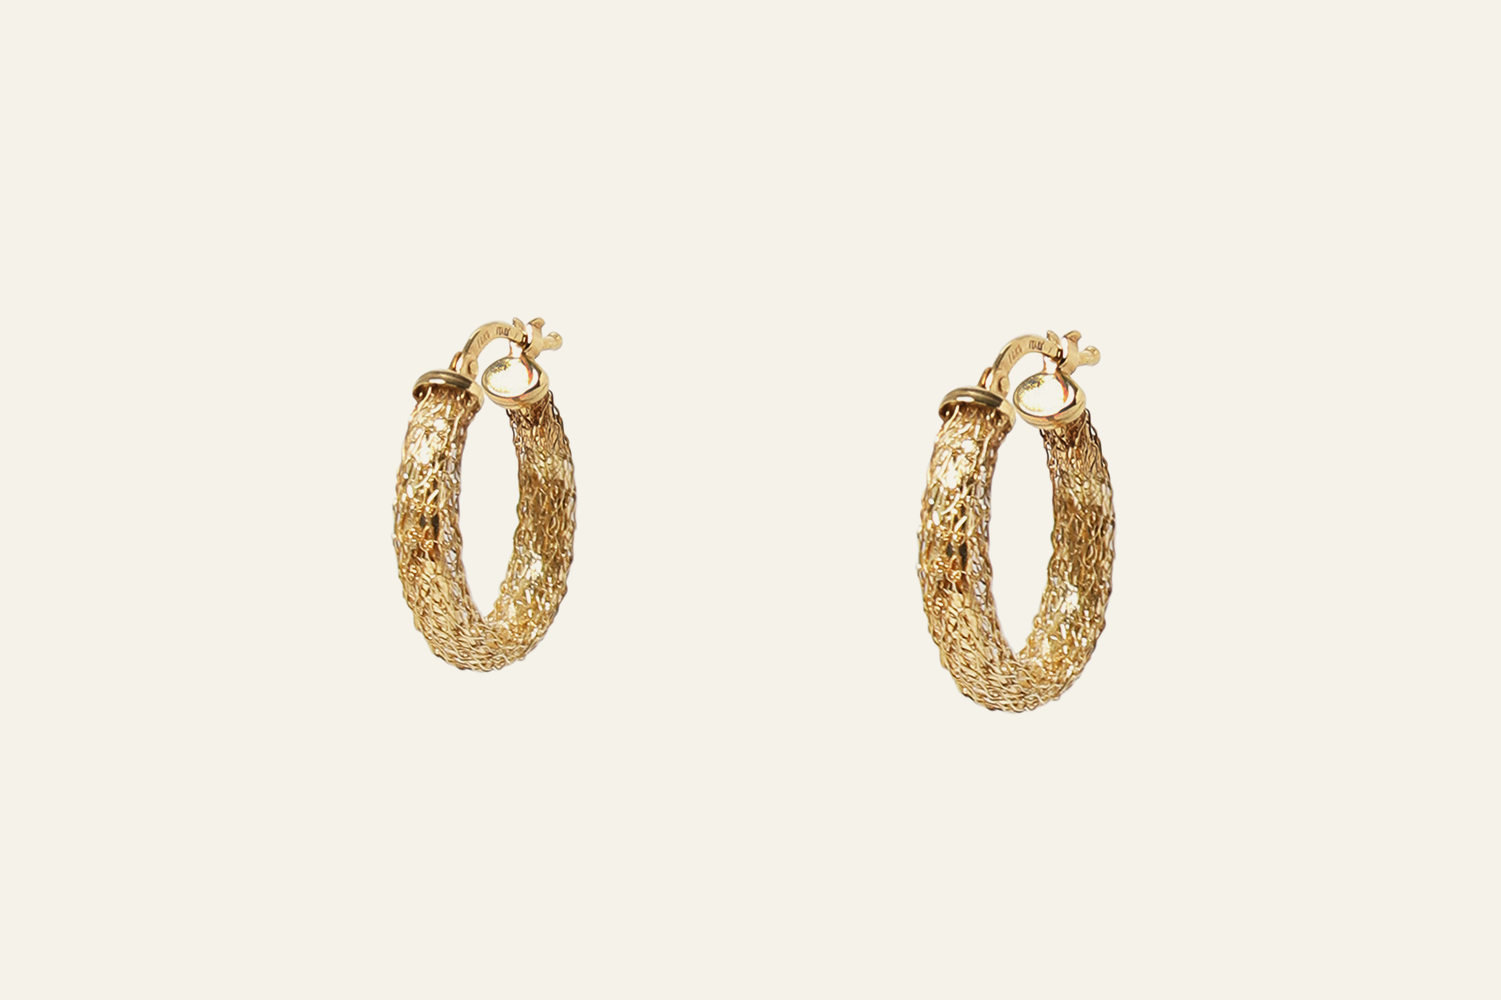 L' Opa Hoop Earrings